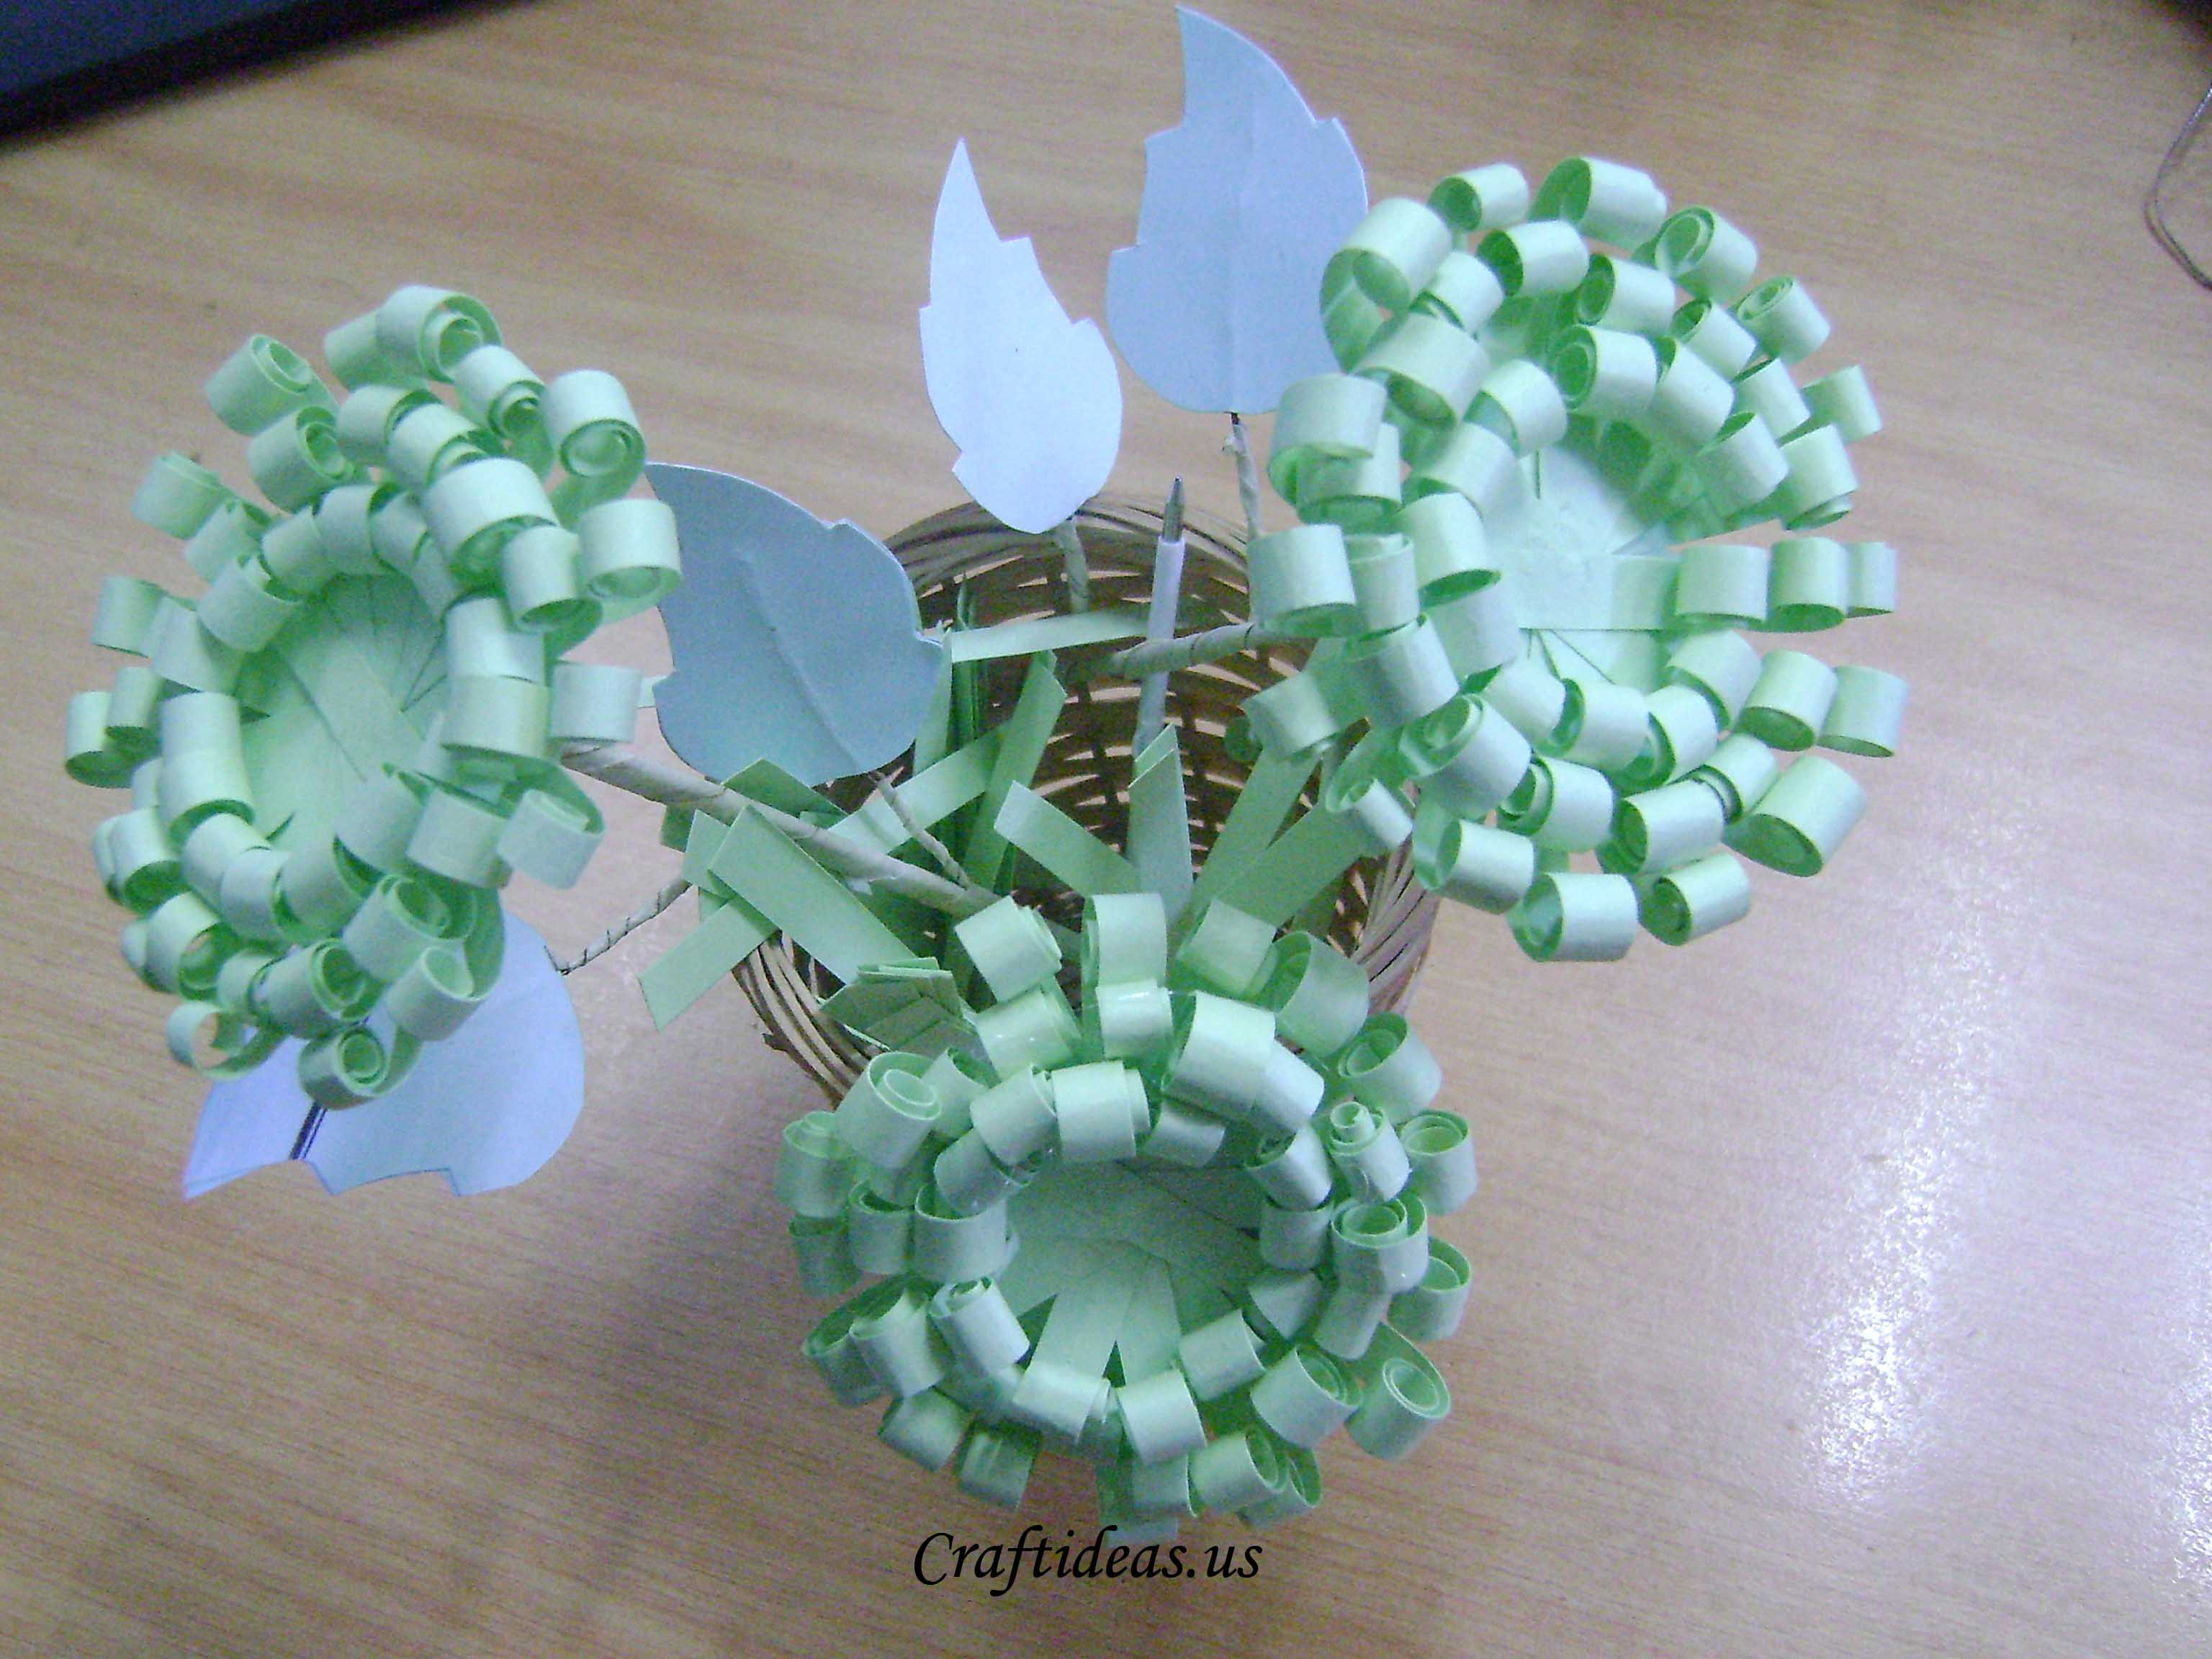 Paper craft ideas paper chrysanthemums tutorial jeuxipadfo Choice Image